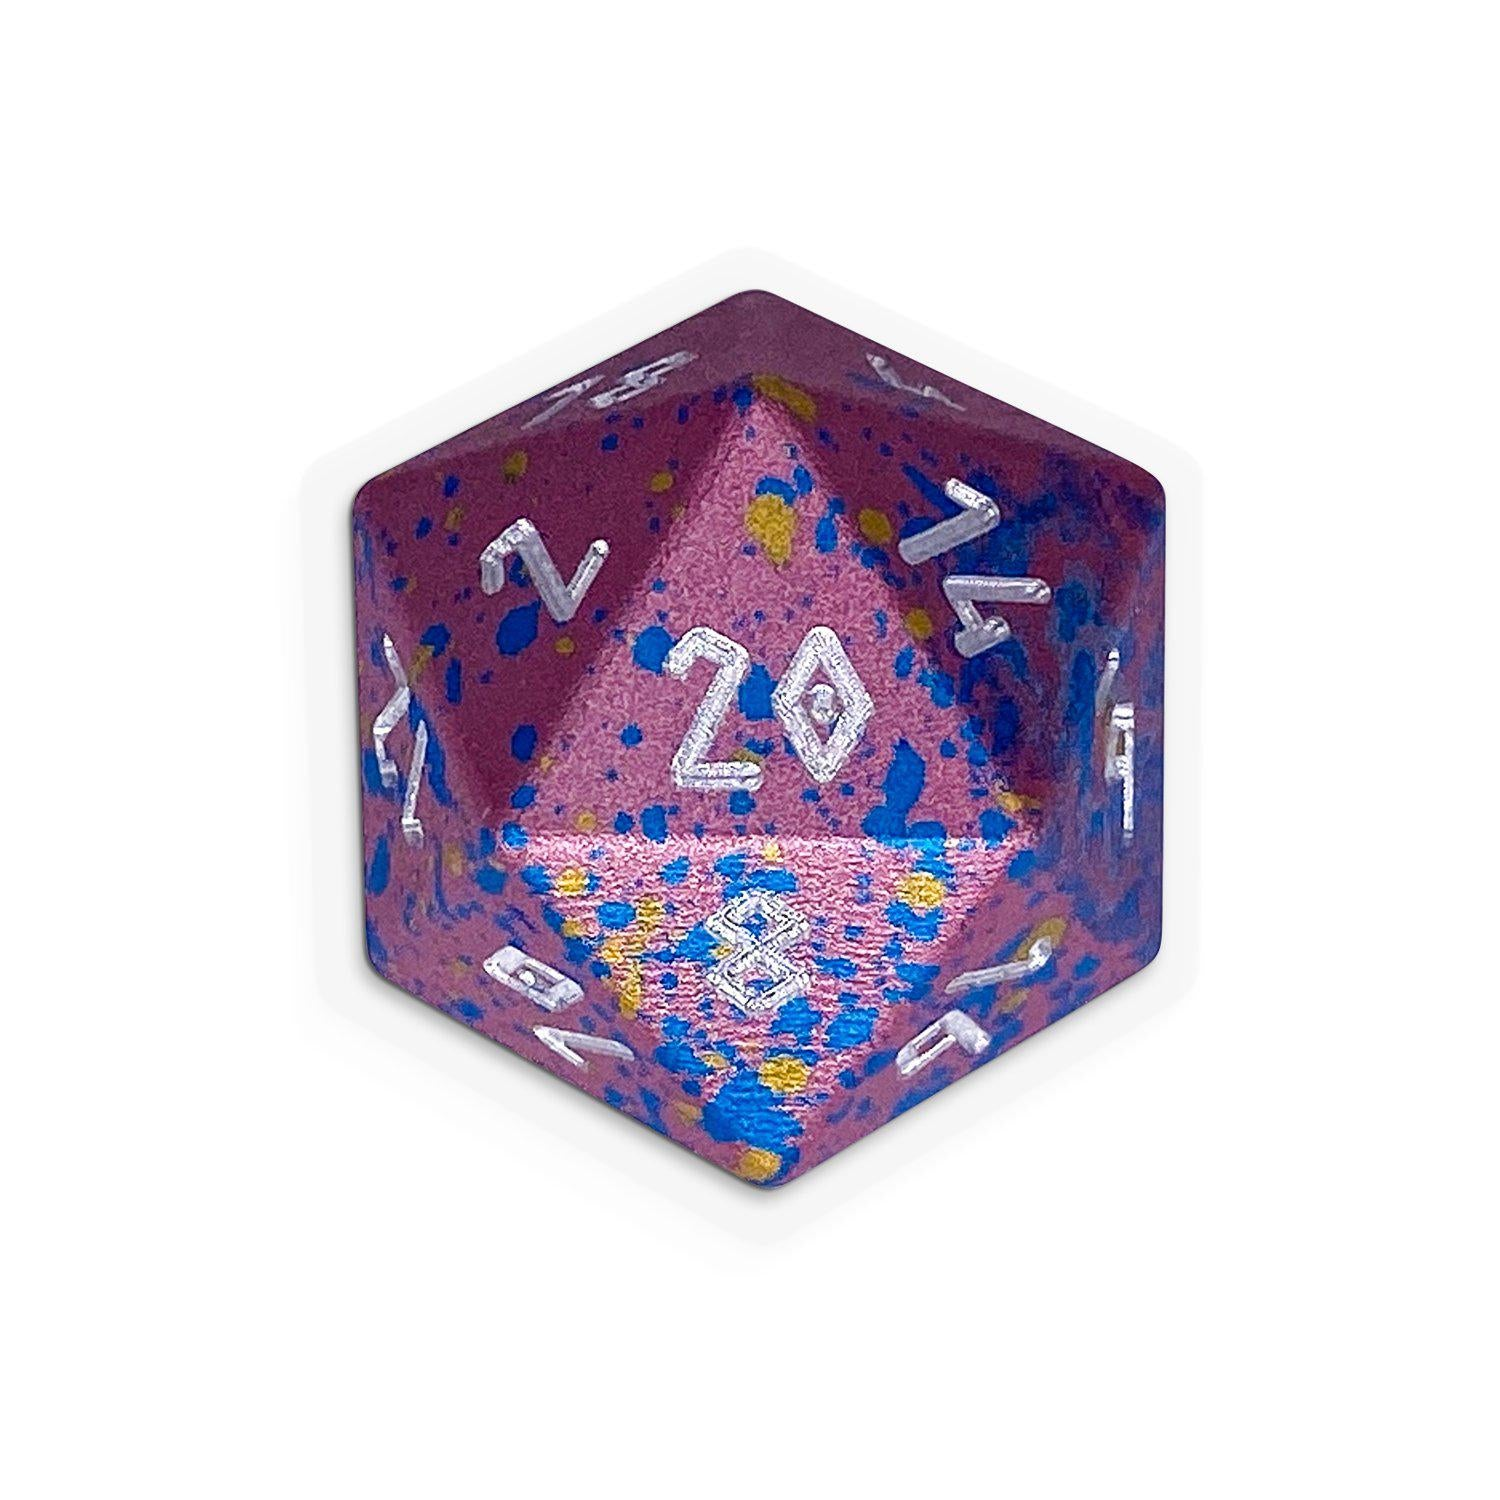 Bubblegum - Single D20 Wondrous 20mm 6063 Aircraft Grade Aluminum Metal Die